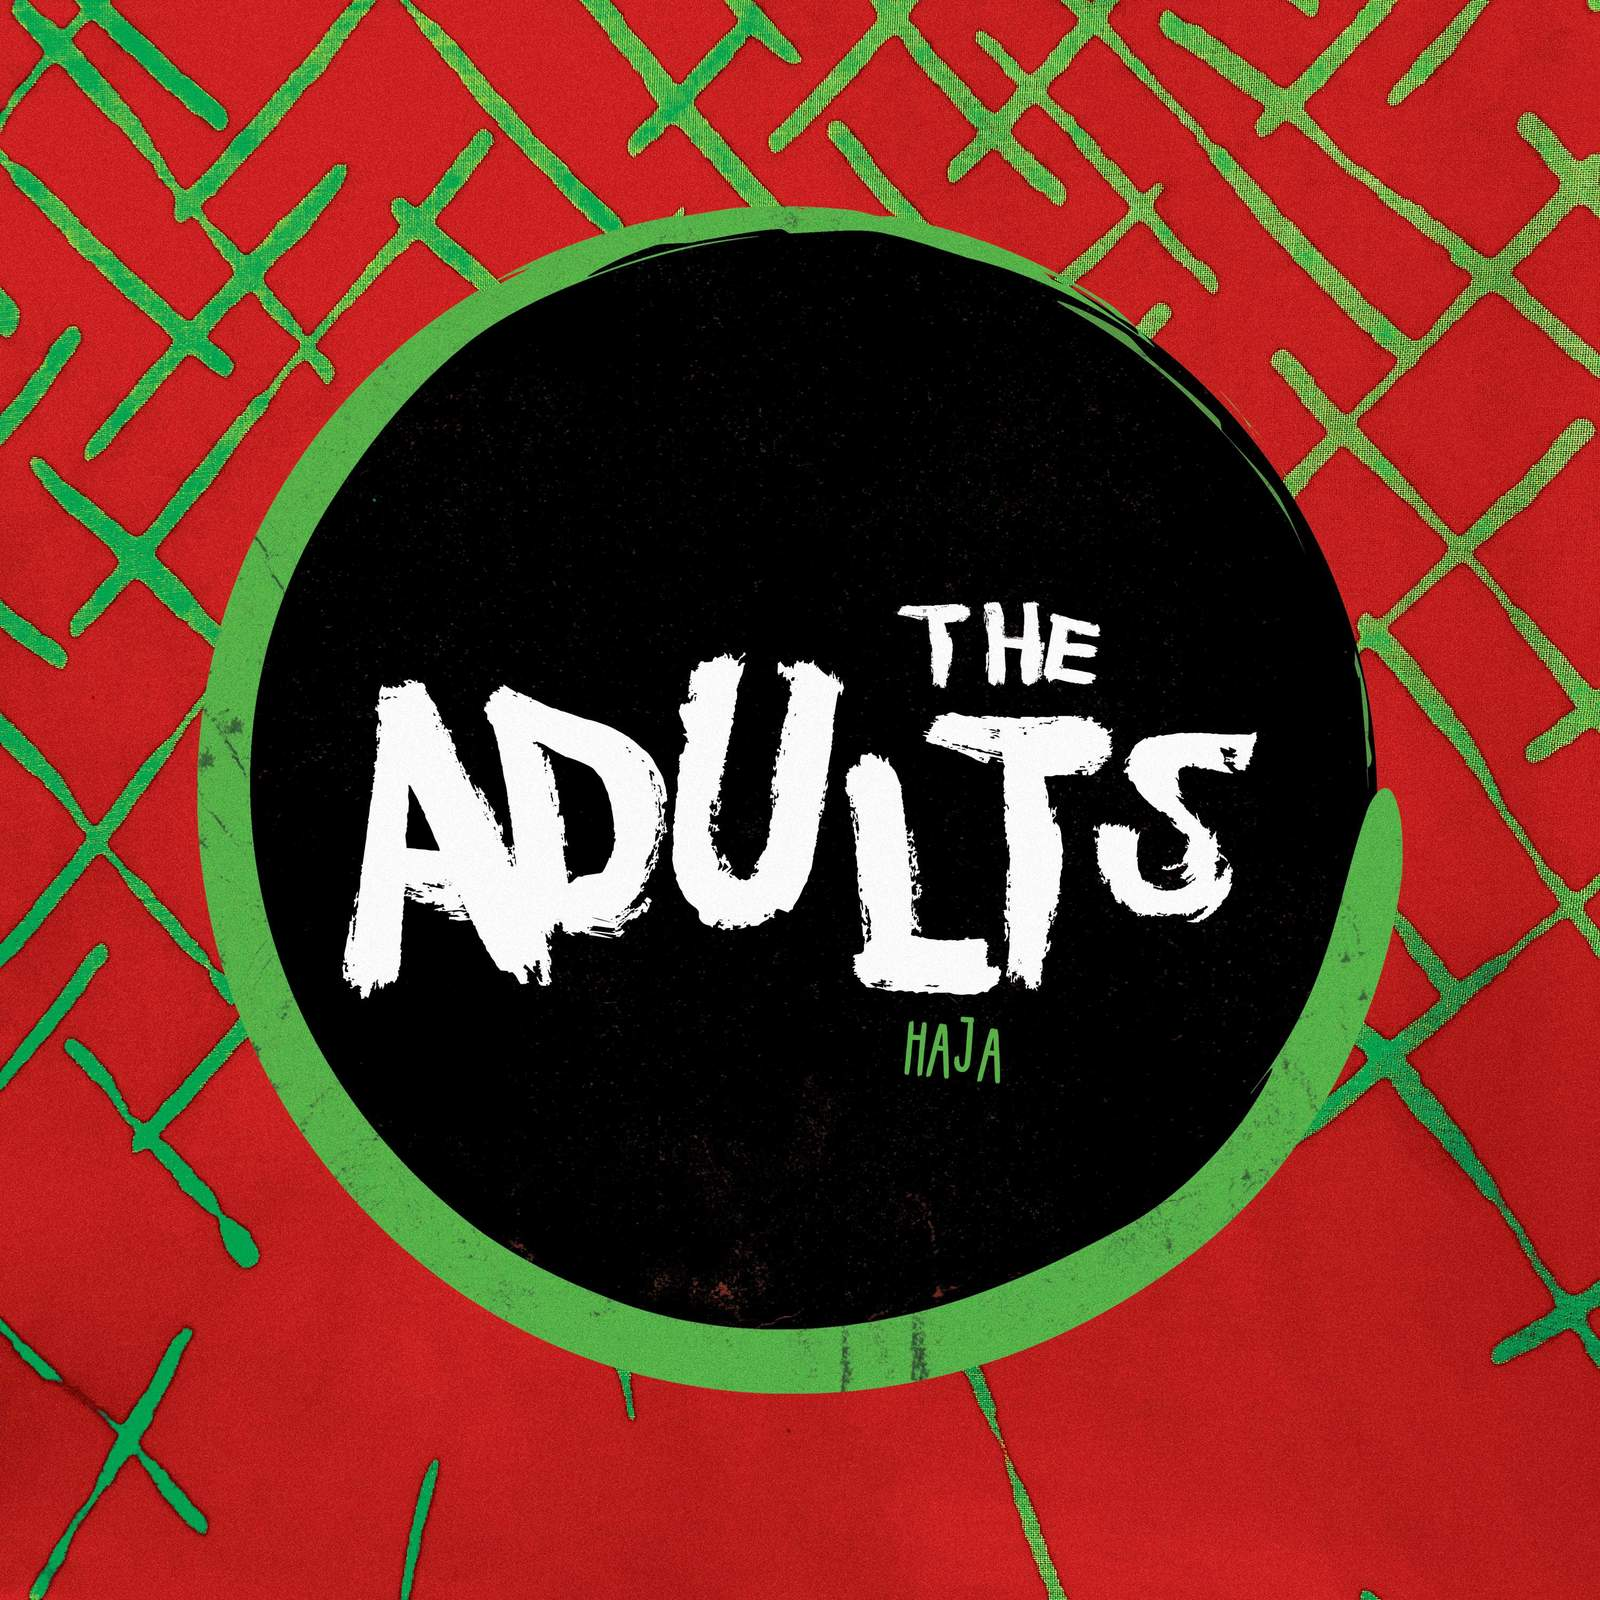 Haja by The Adults image